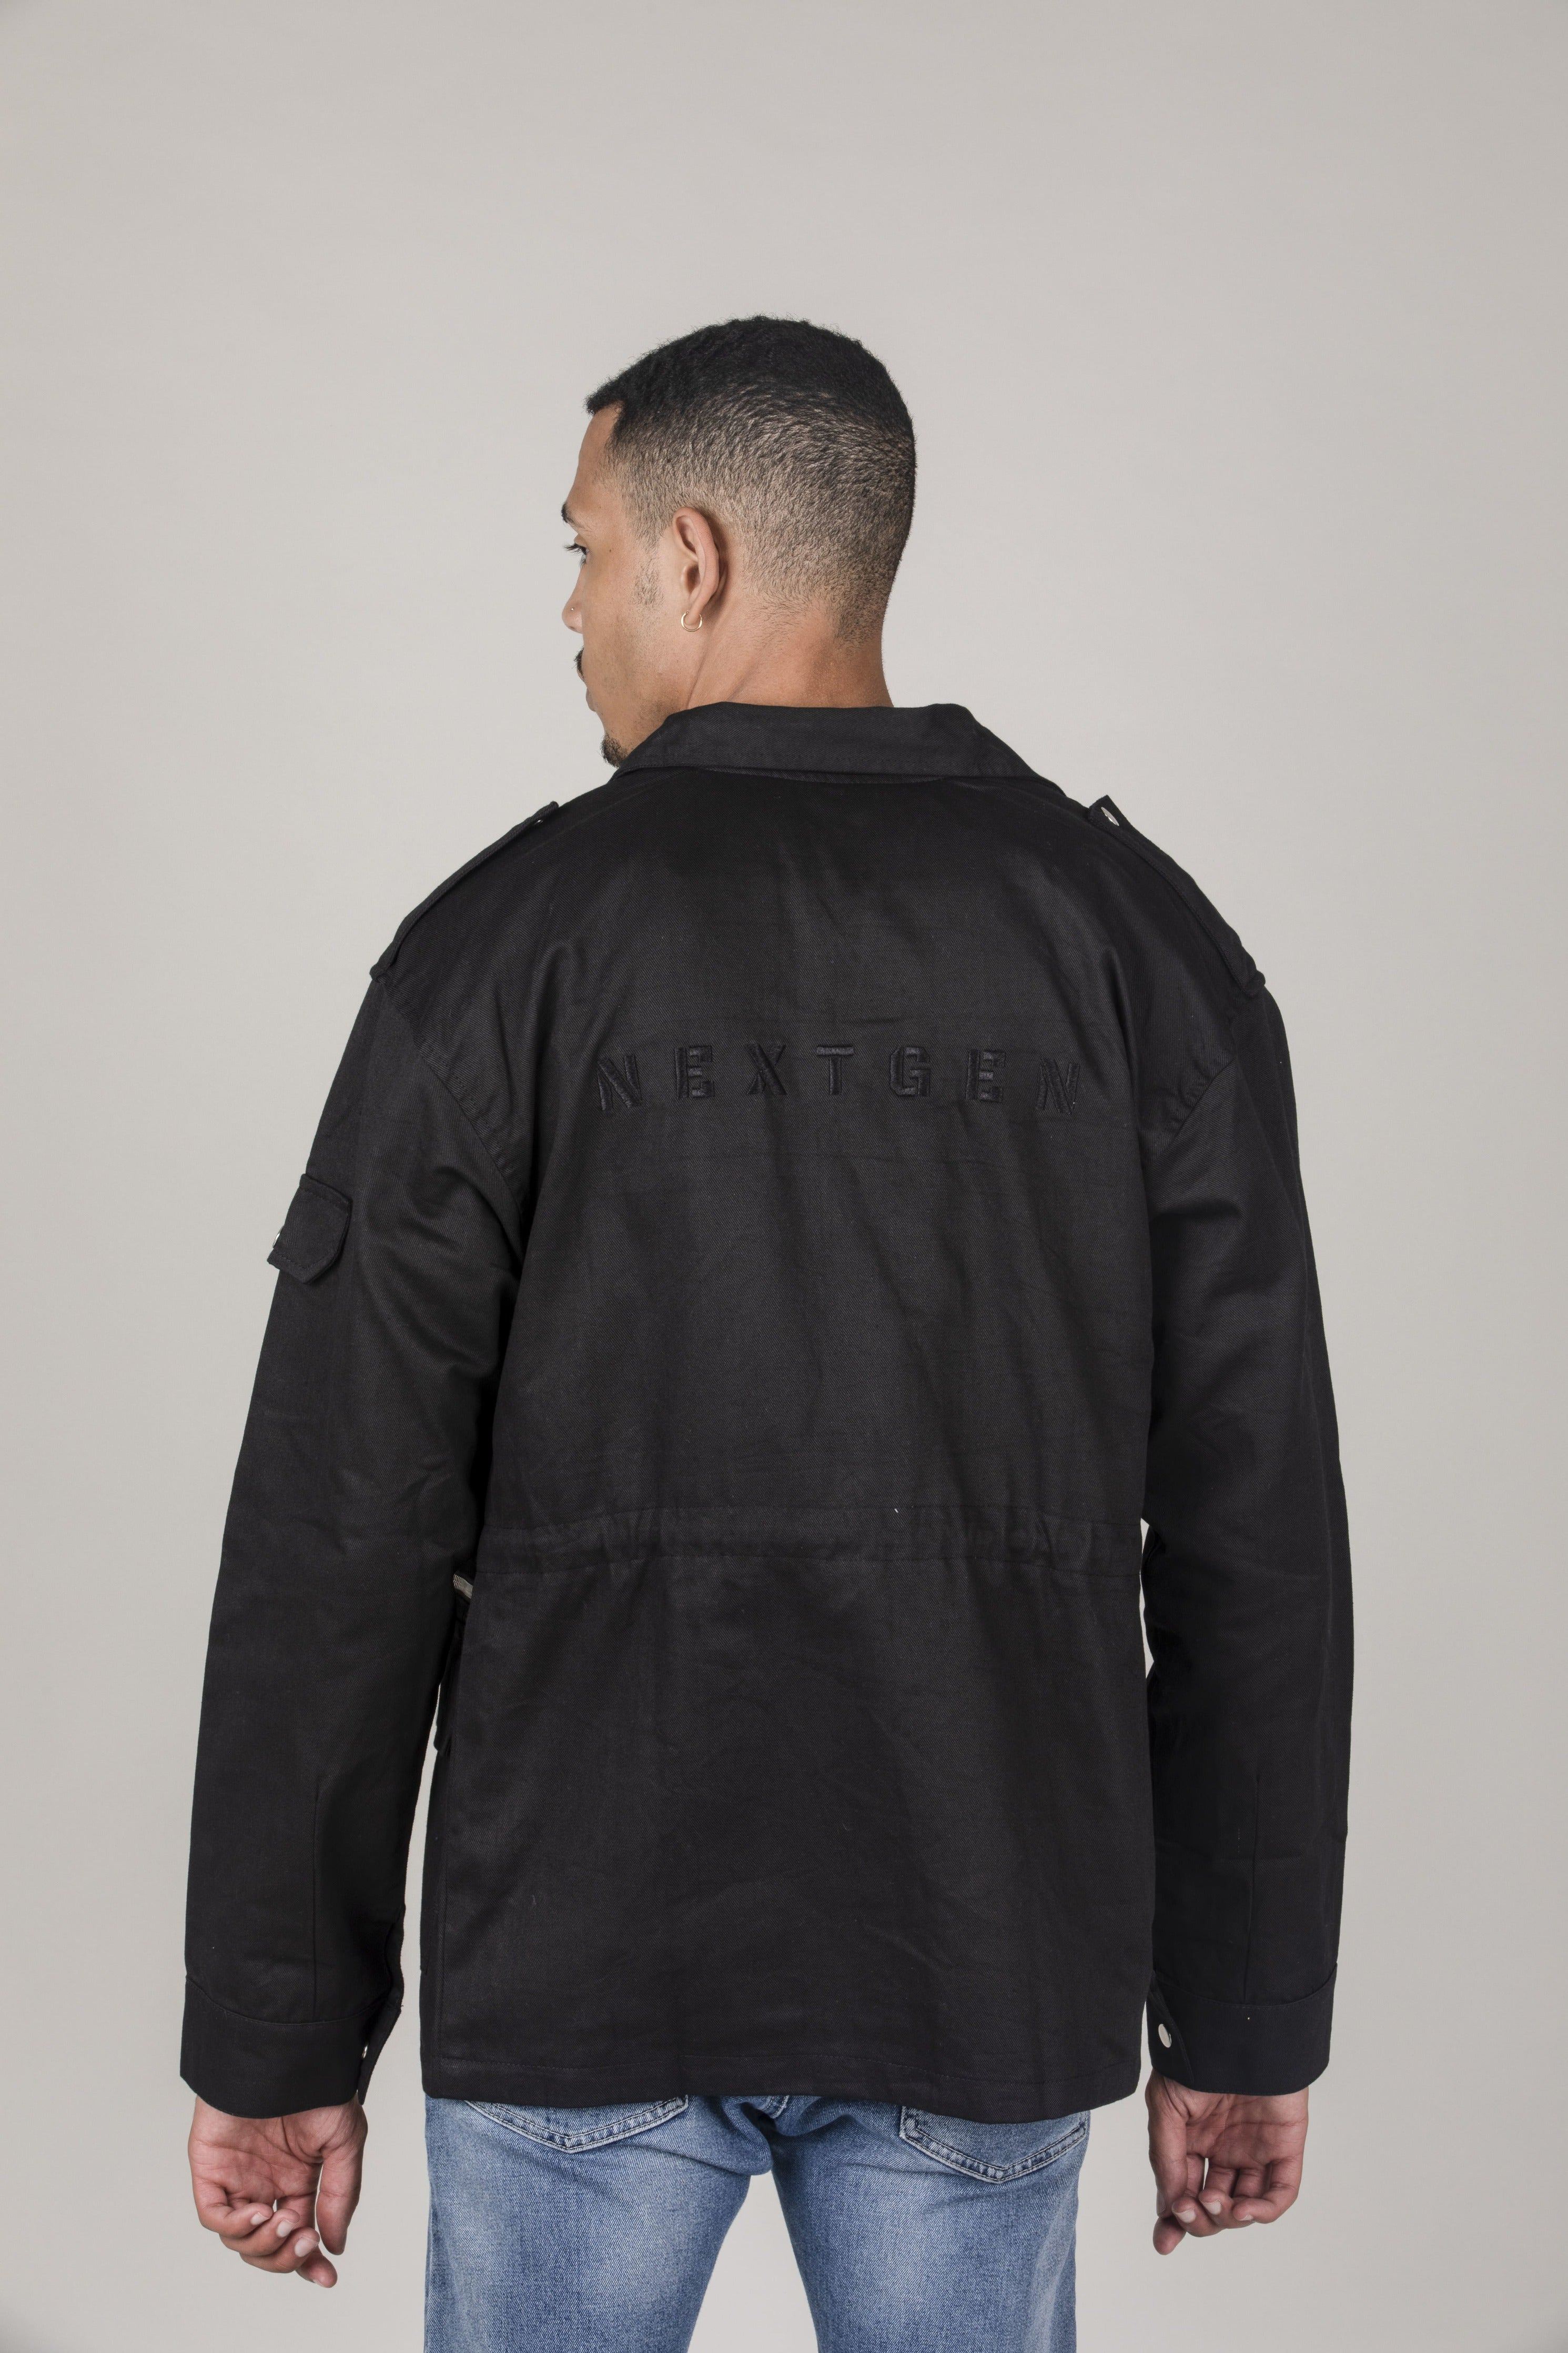 OFFICIAL TEAM COMBAT JACKET